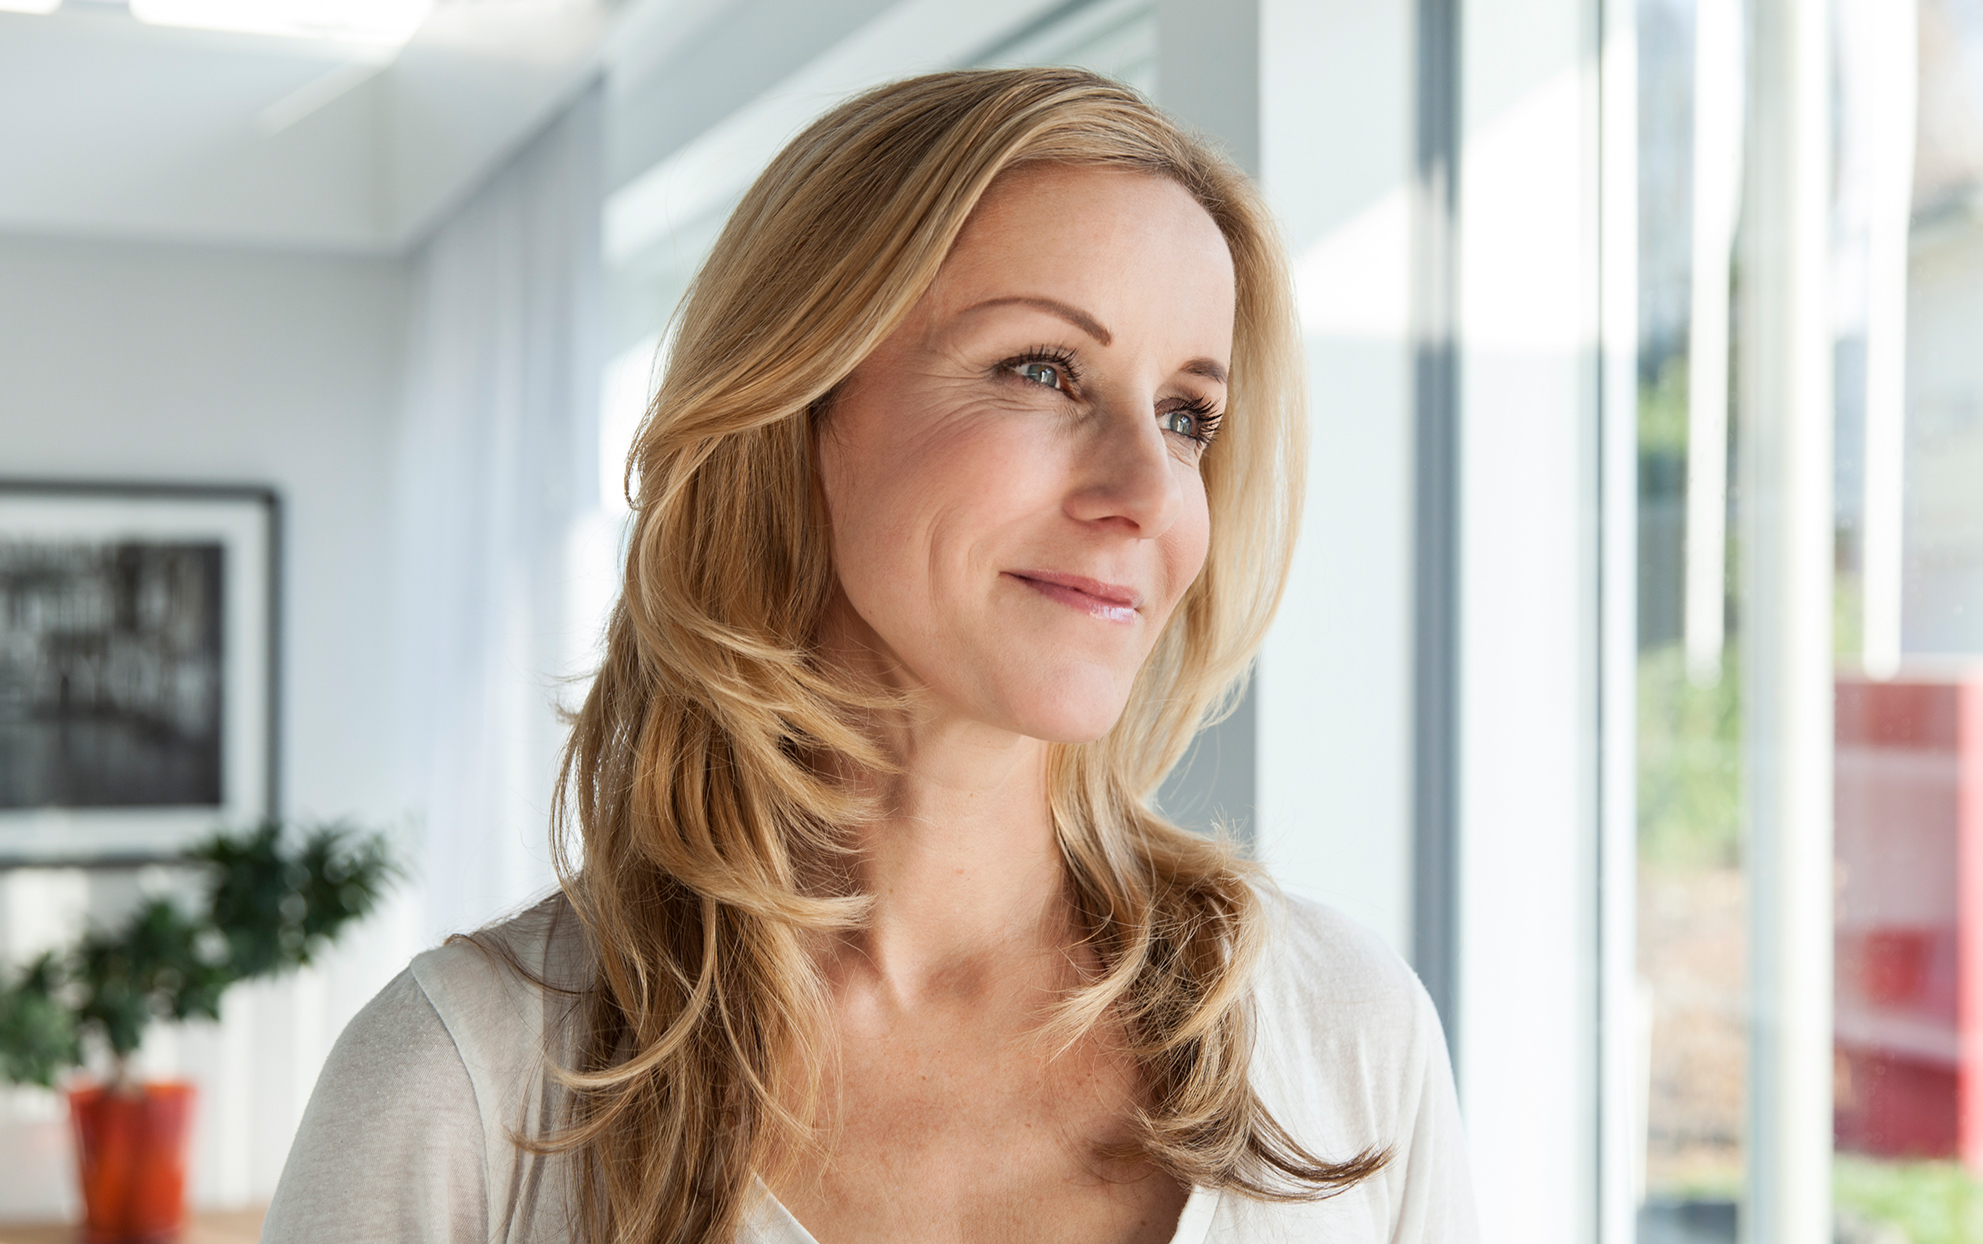 middle aged woman with long blonde hair staring outside